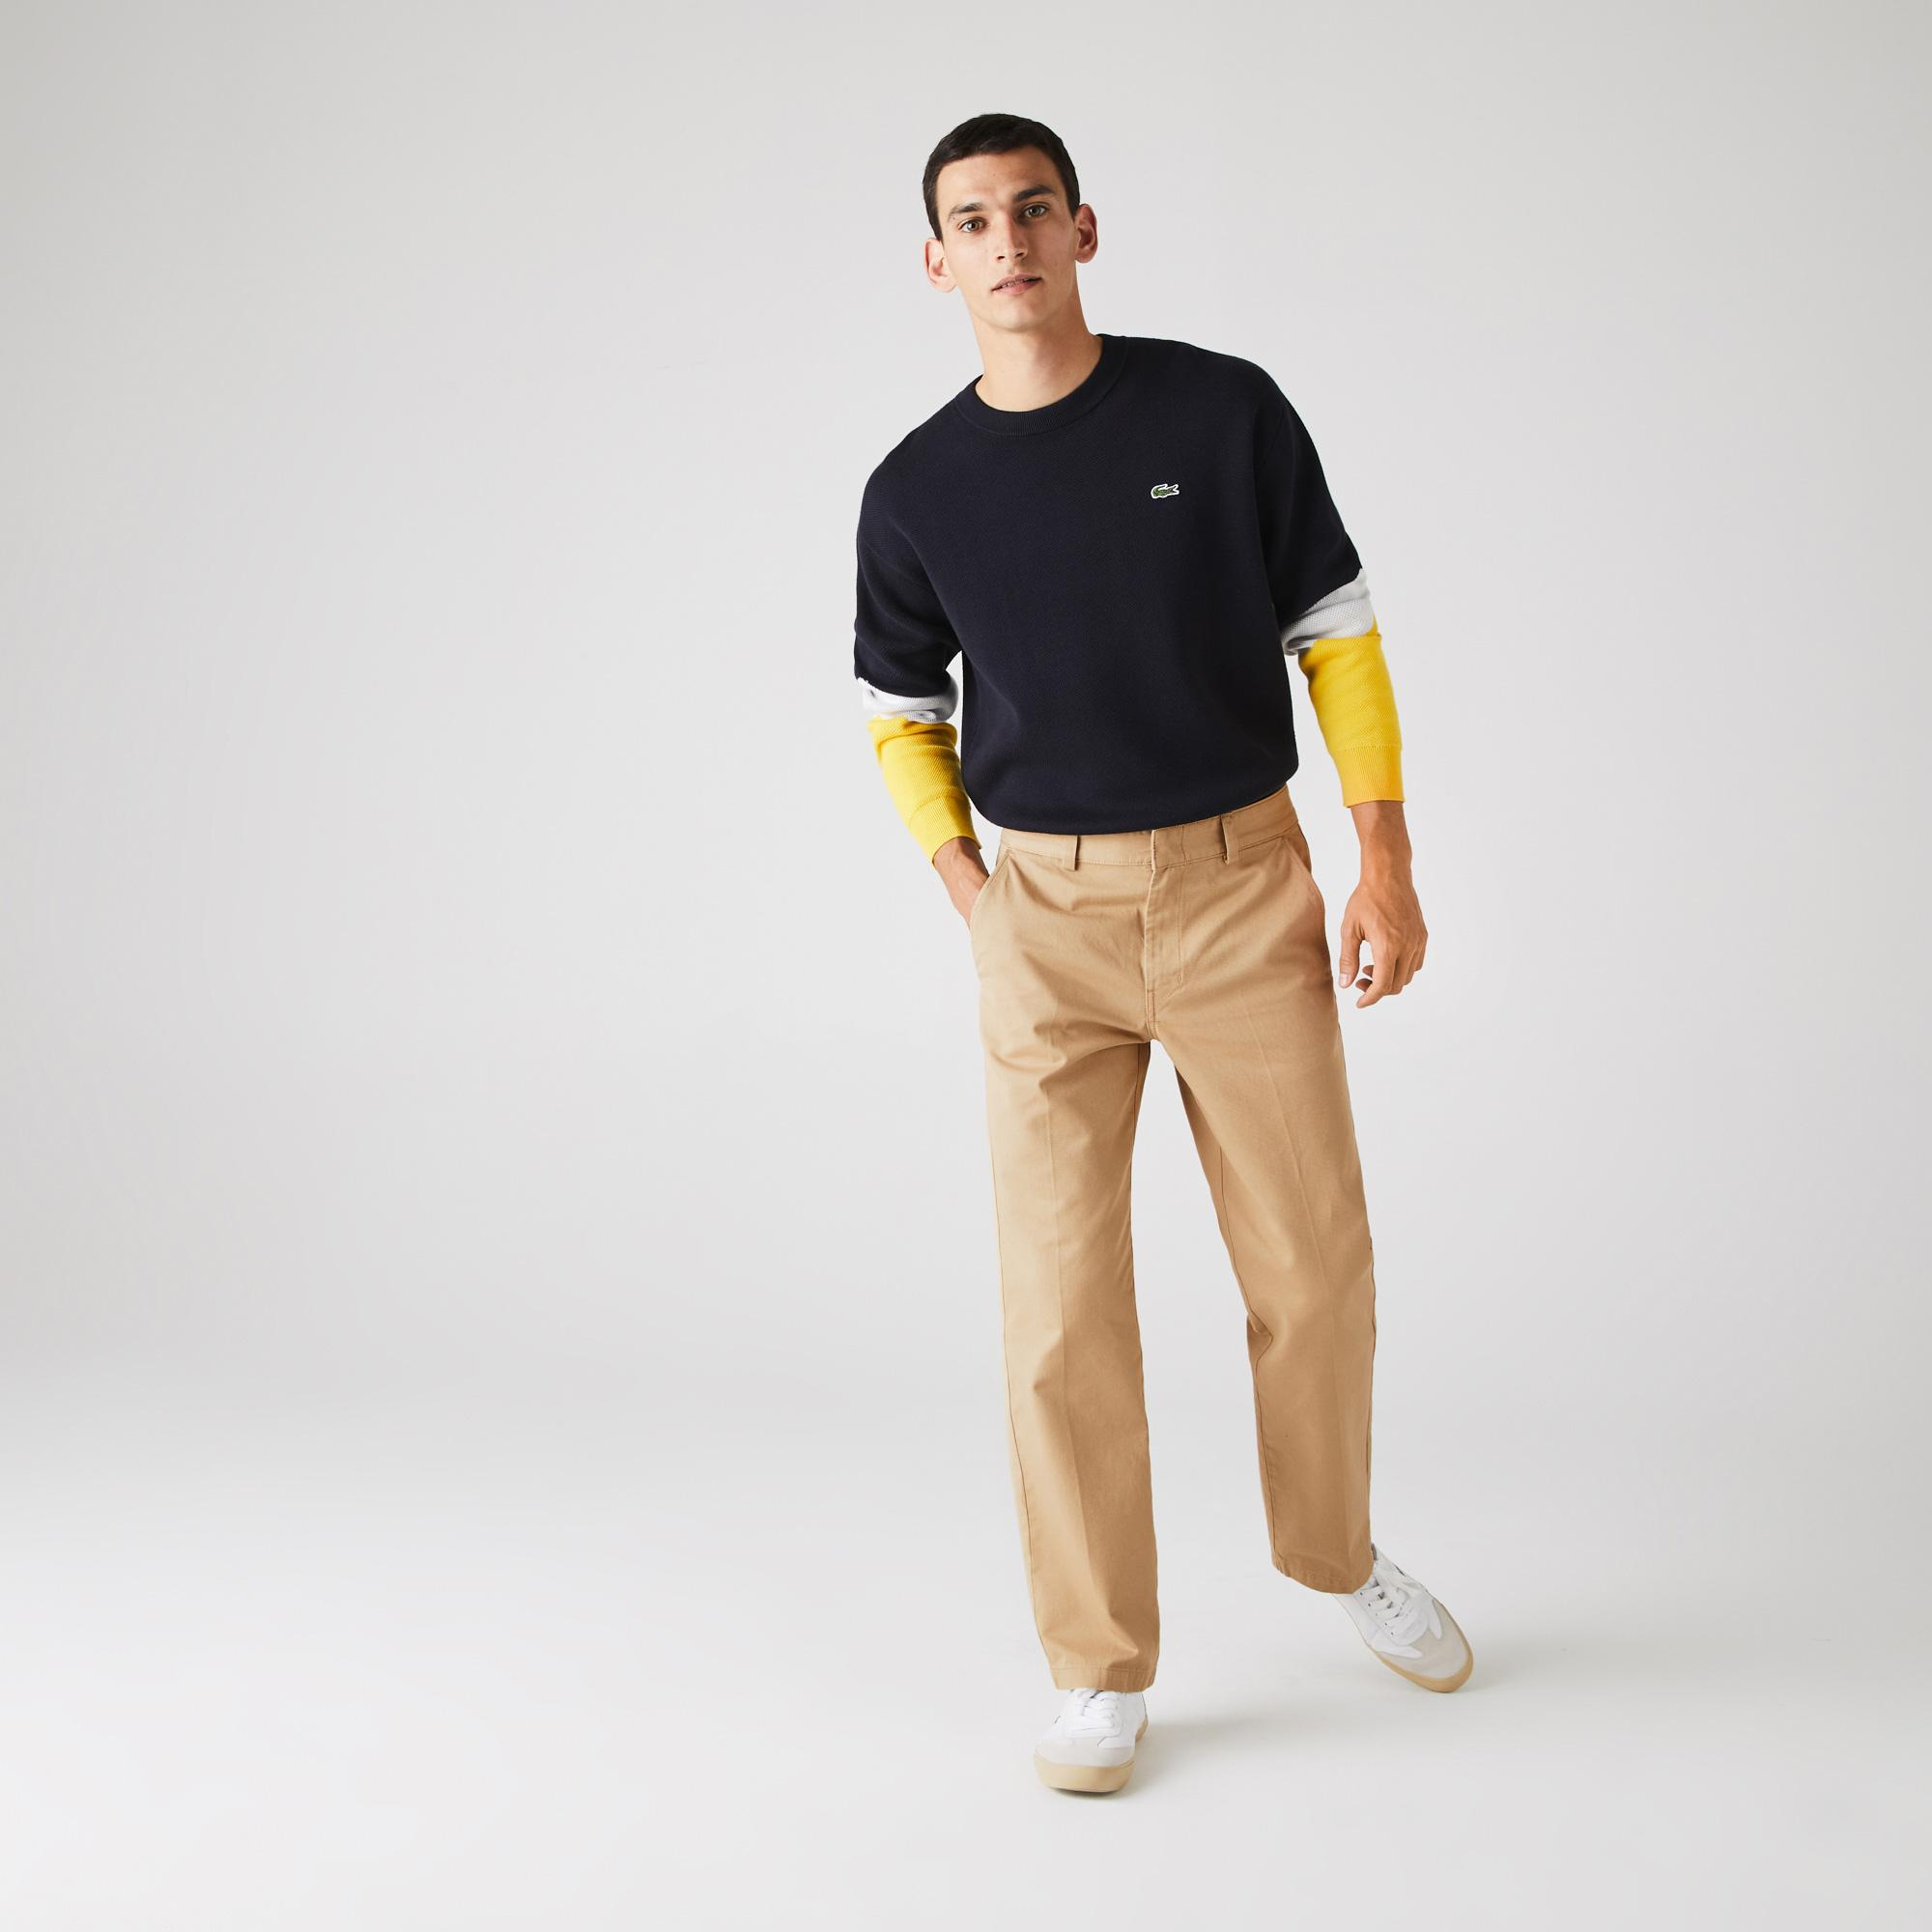 Lacoste Men's LIVE Standard Fit Pleated Cotton Chino Pants